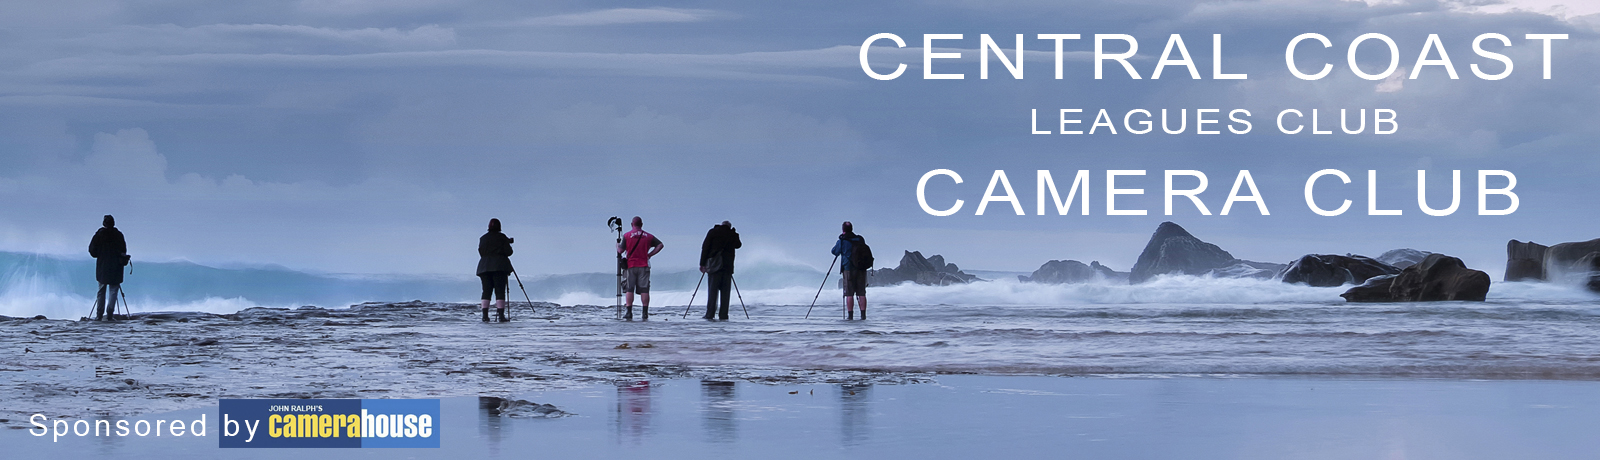 Central Coast Leagues Club Camera Club